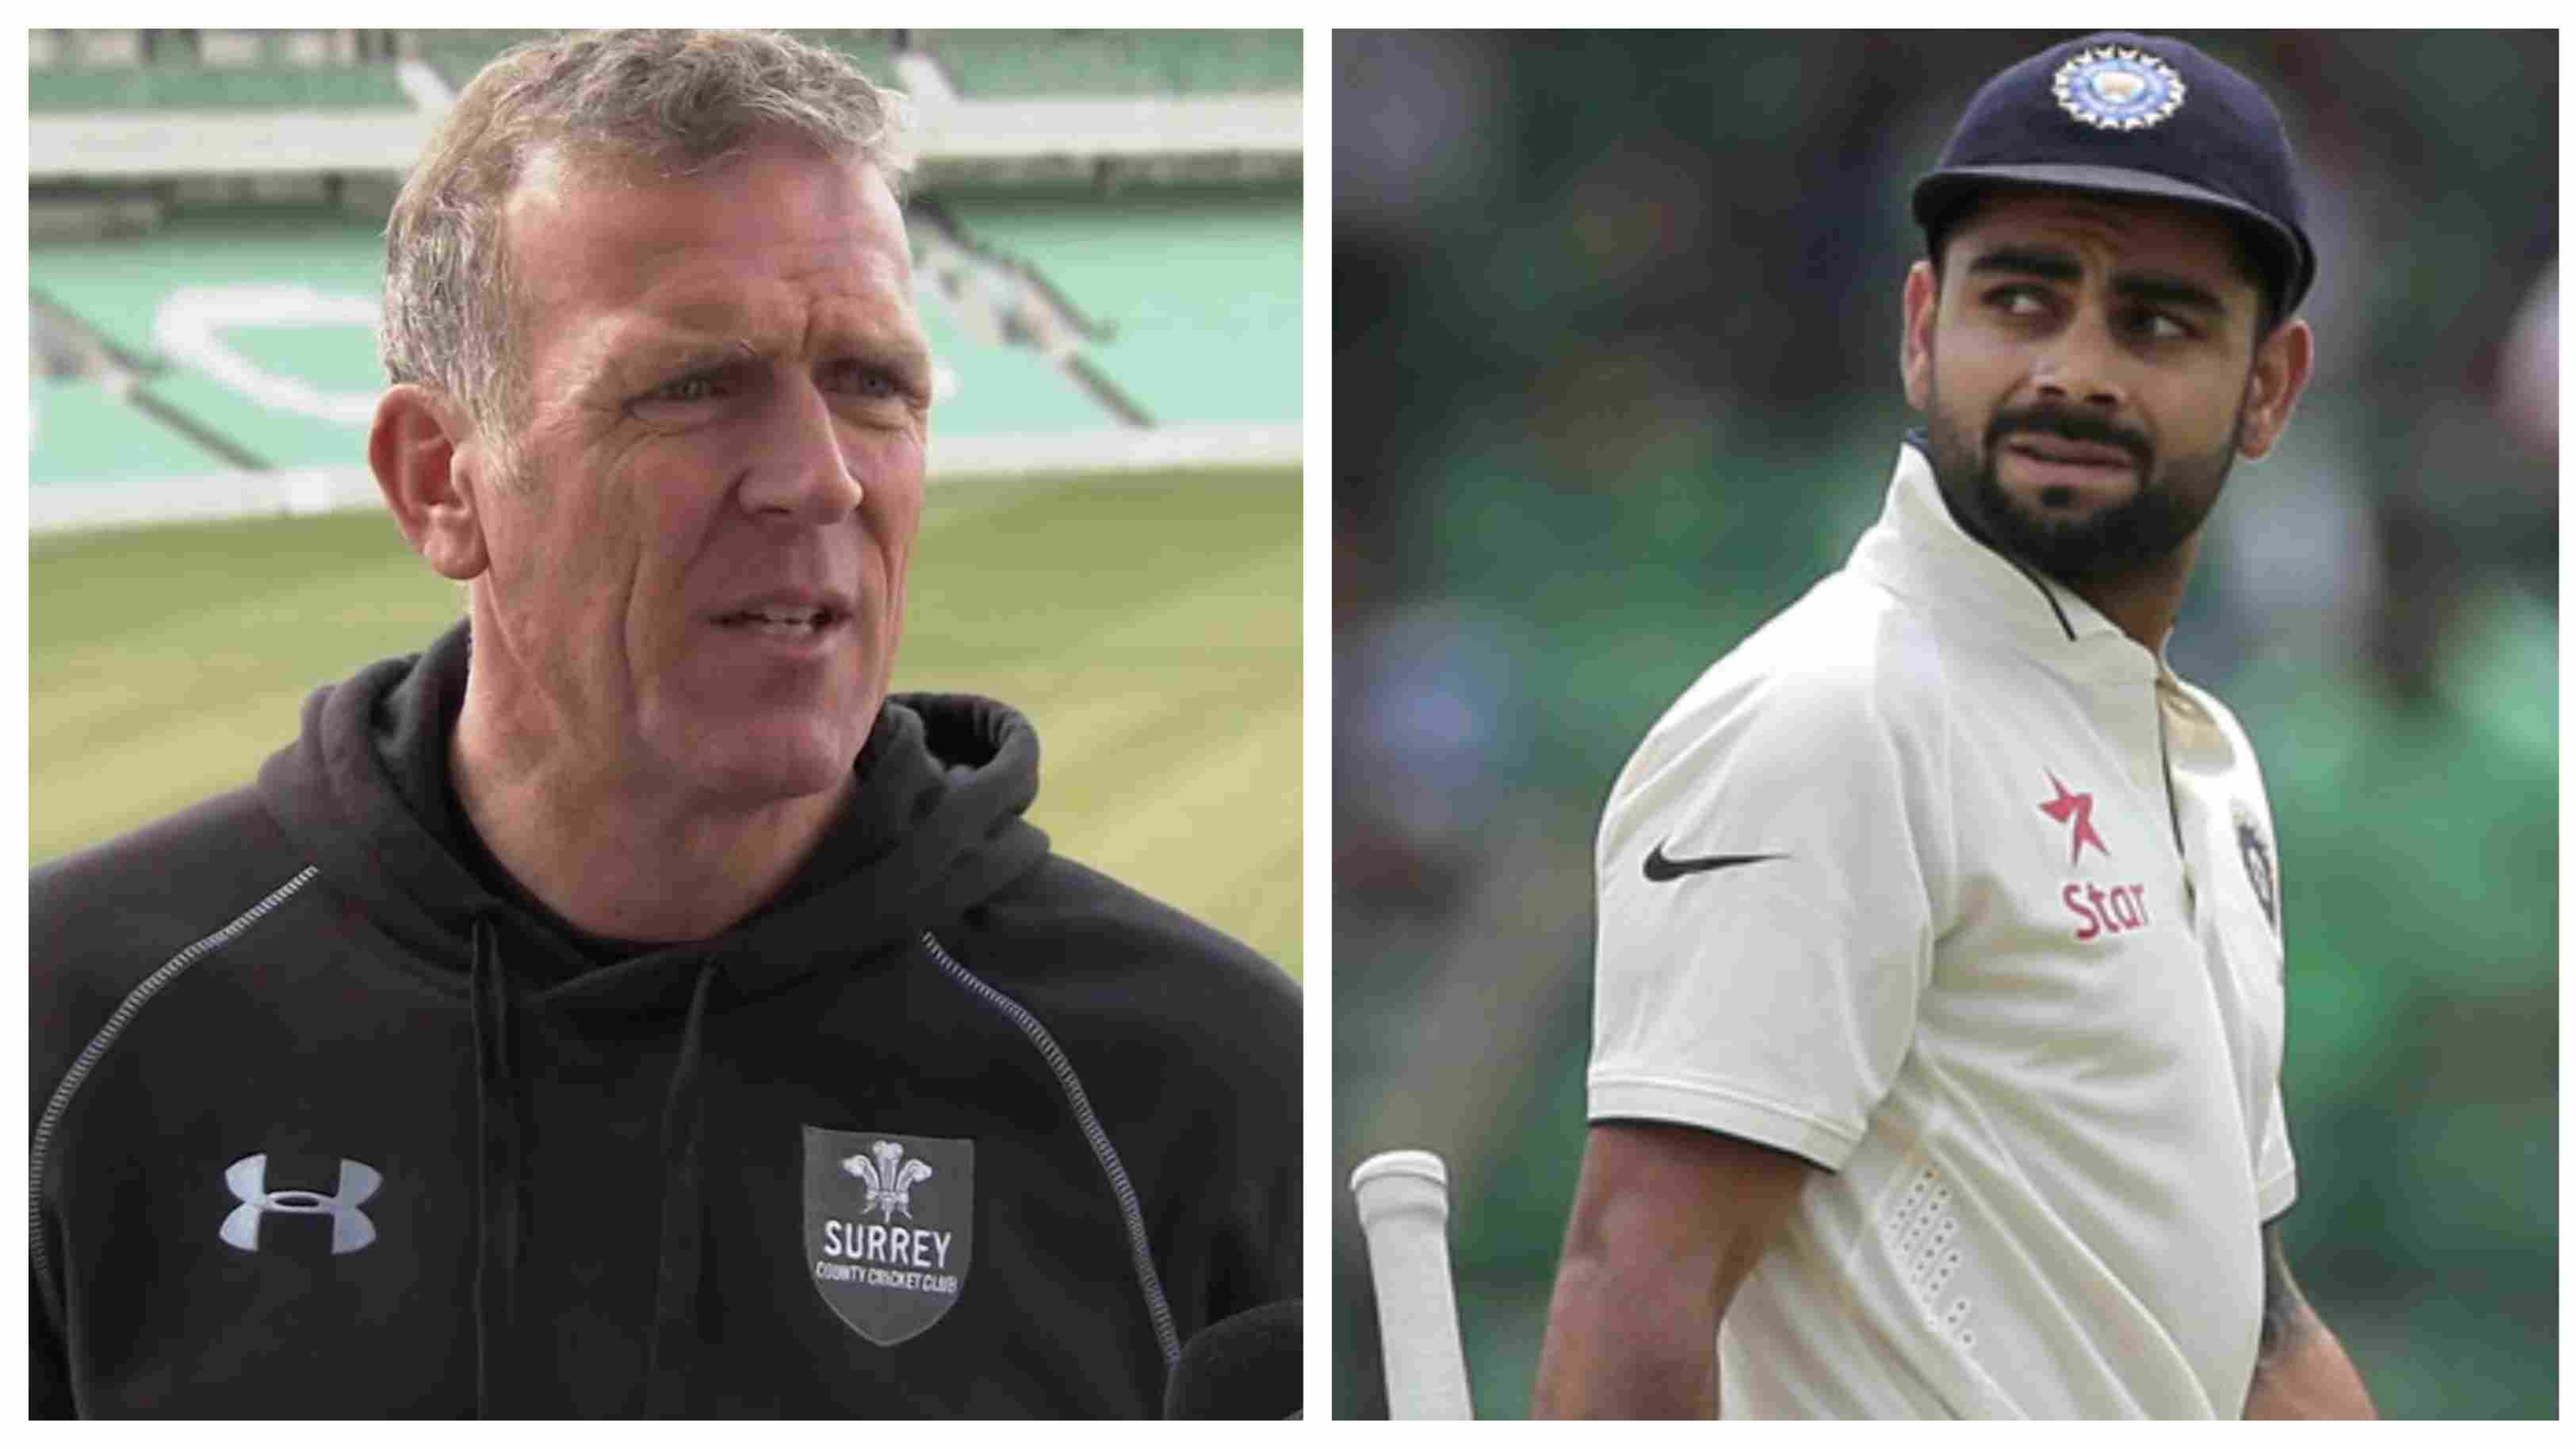 ENG v IND 2018: Only Virat Kohli can answer if skipping county stint was beneficial, says Surrey director Alec Stewart